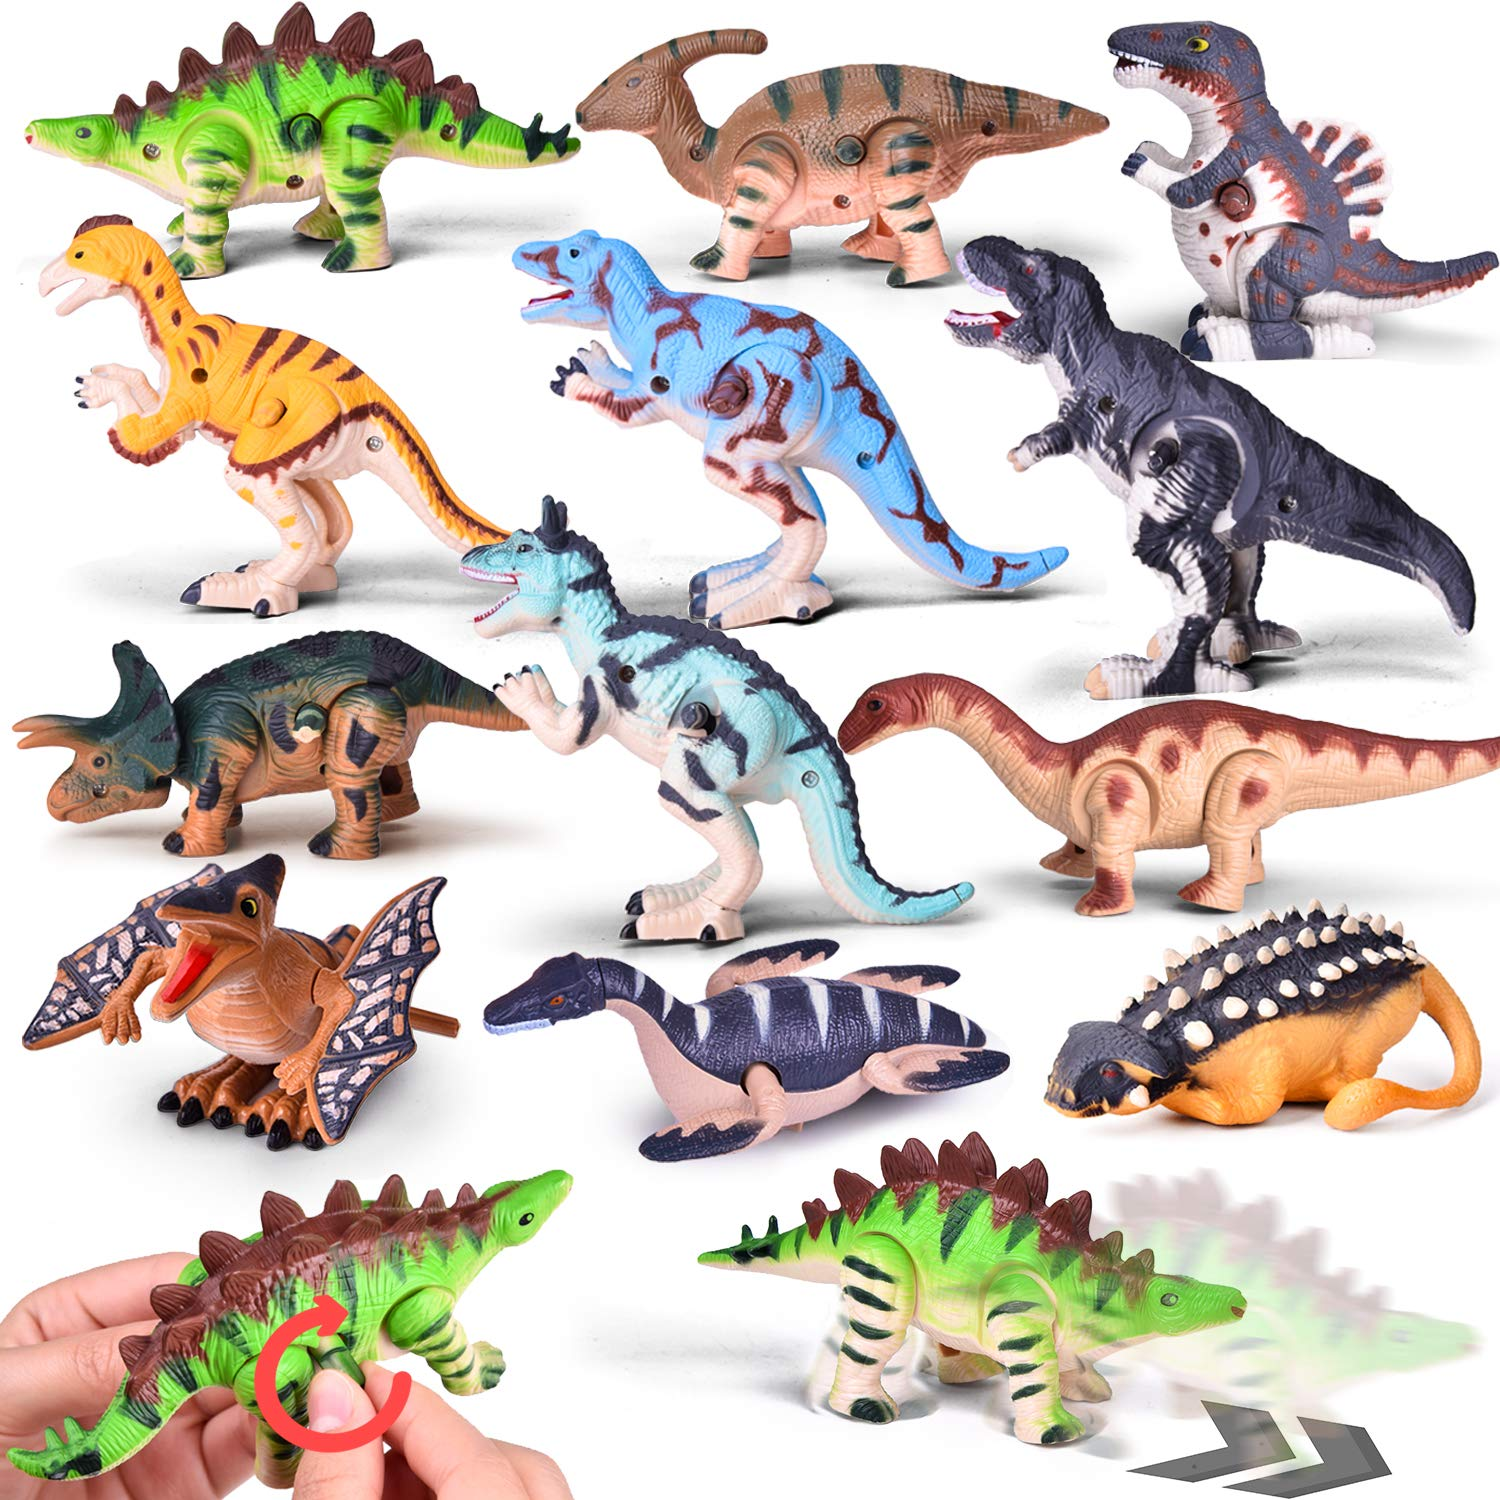 Wind Up Toys 12 PCs Assorted Dinosaur Toys for Goodie Bags, Carnival Prizes, Party Favors for Kids by FUN LITTLE TOYS